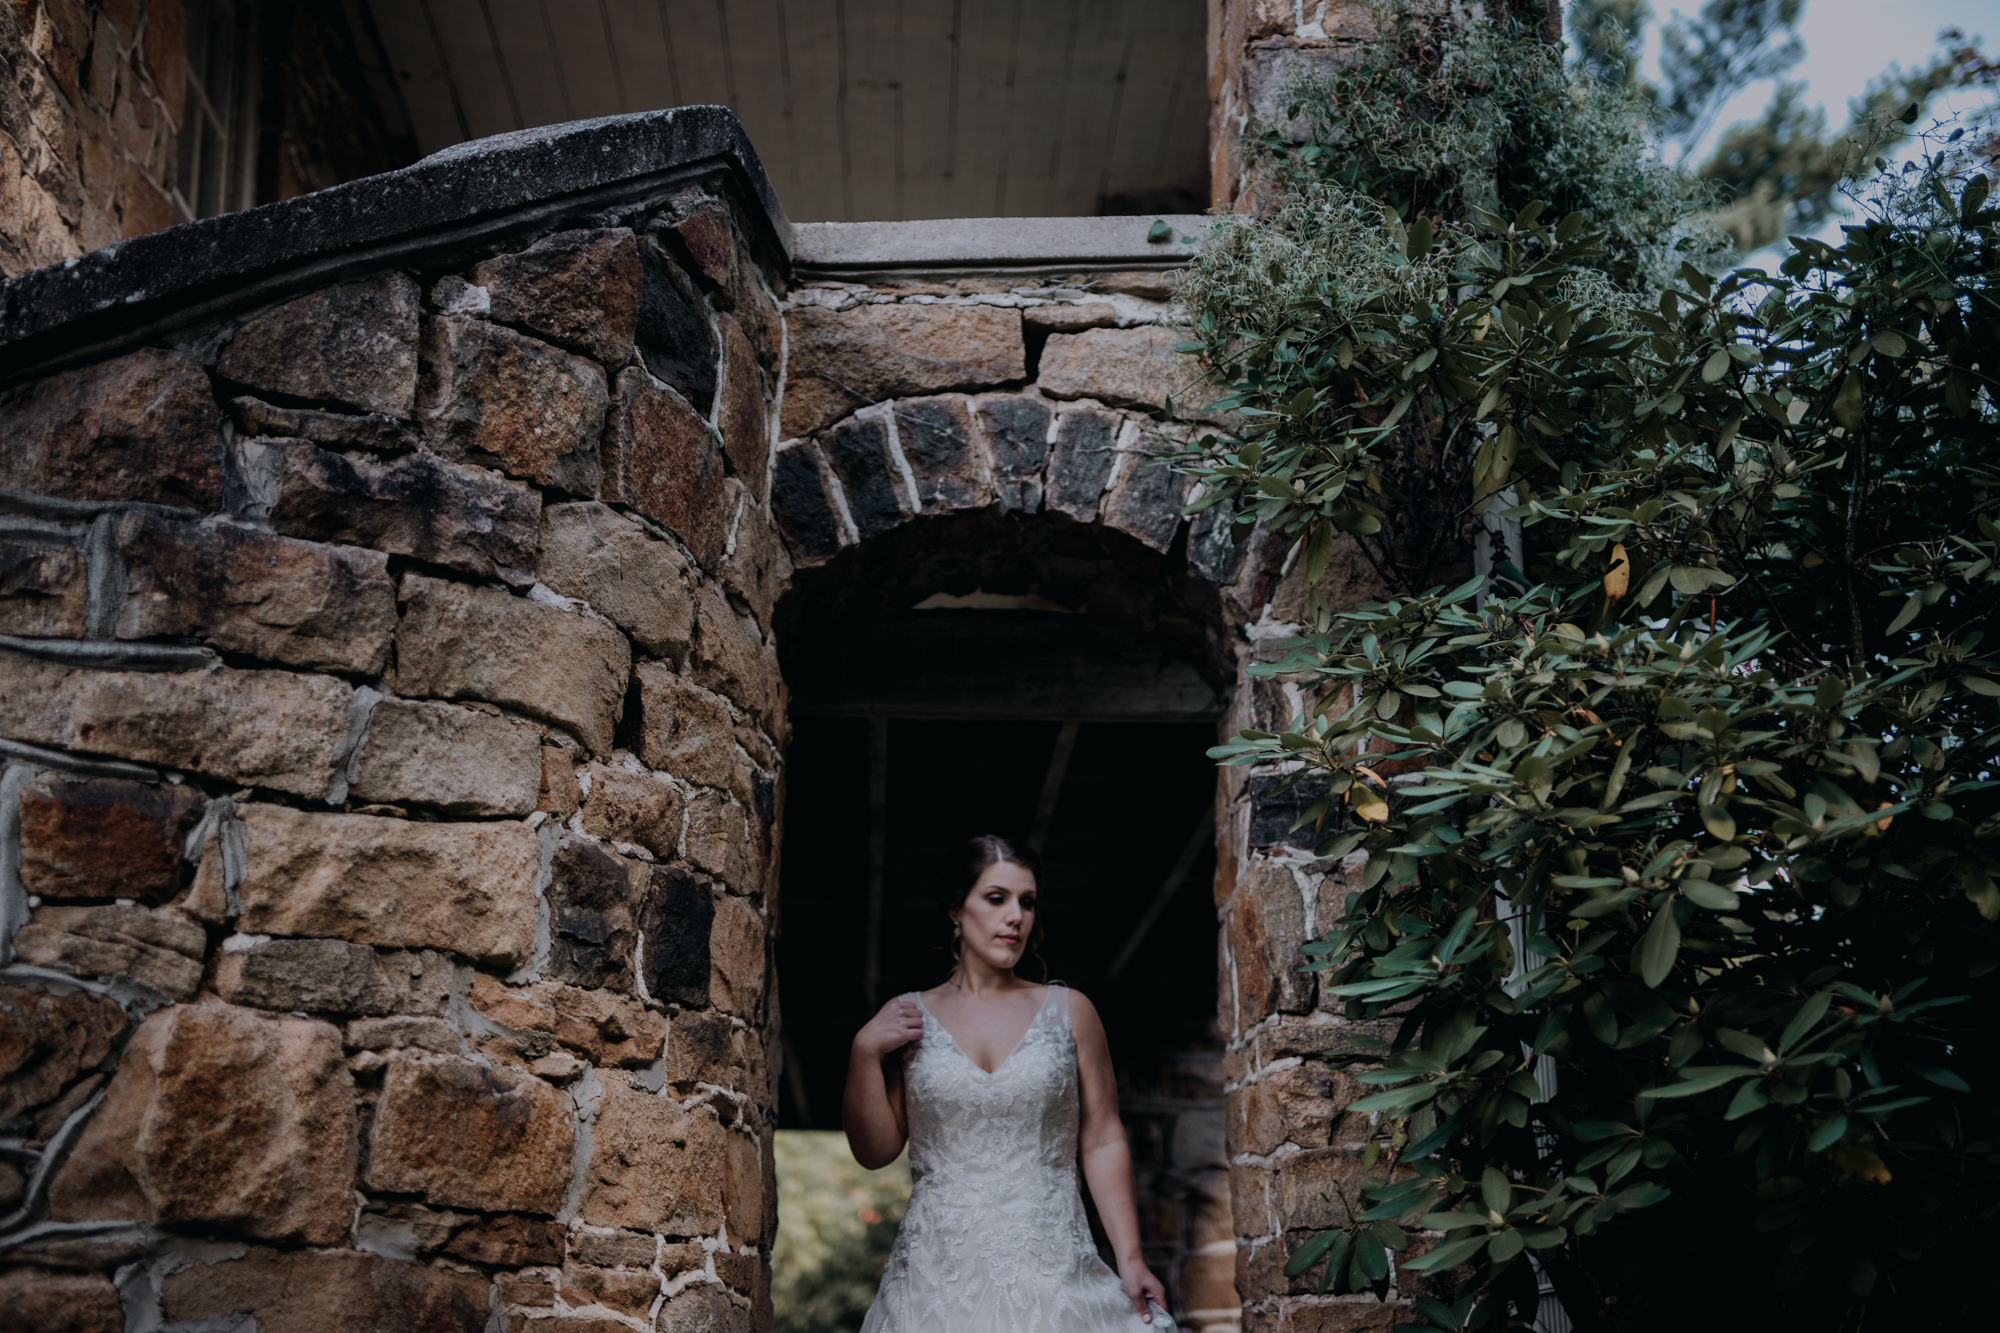 Cambria_Creative_Photographer_Boho_Wedding_Historic_Shady_Lane-4396.jpg